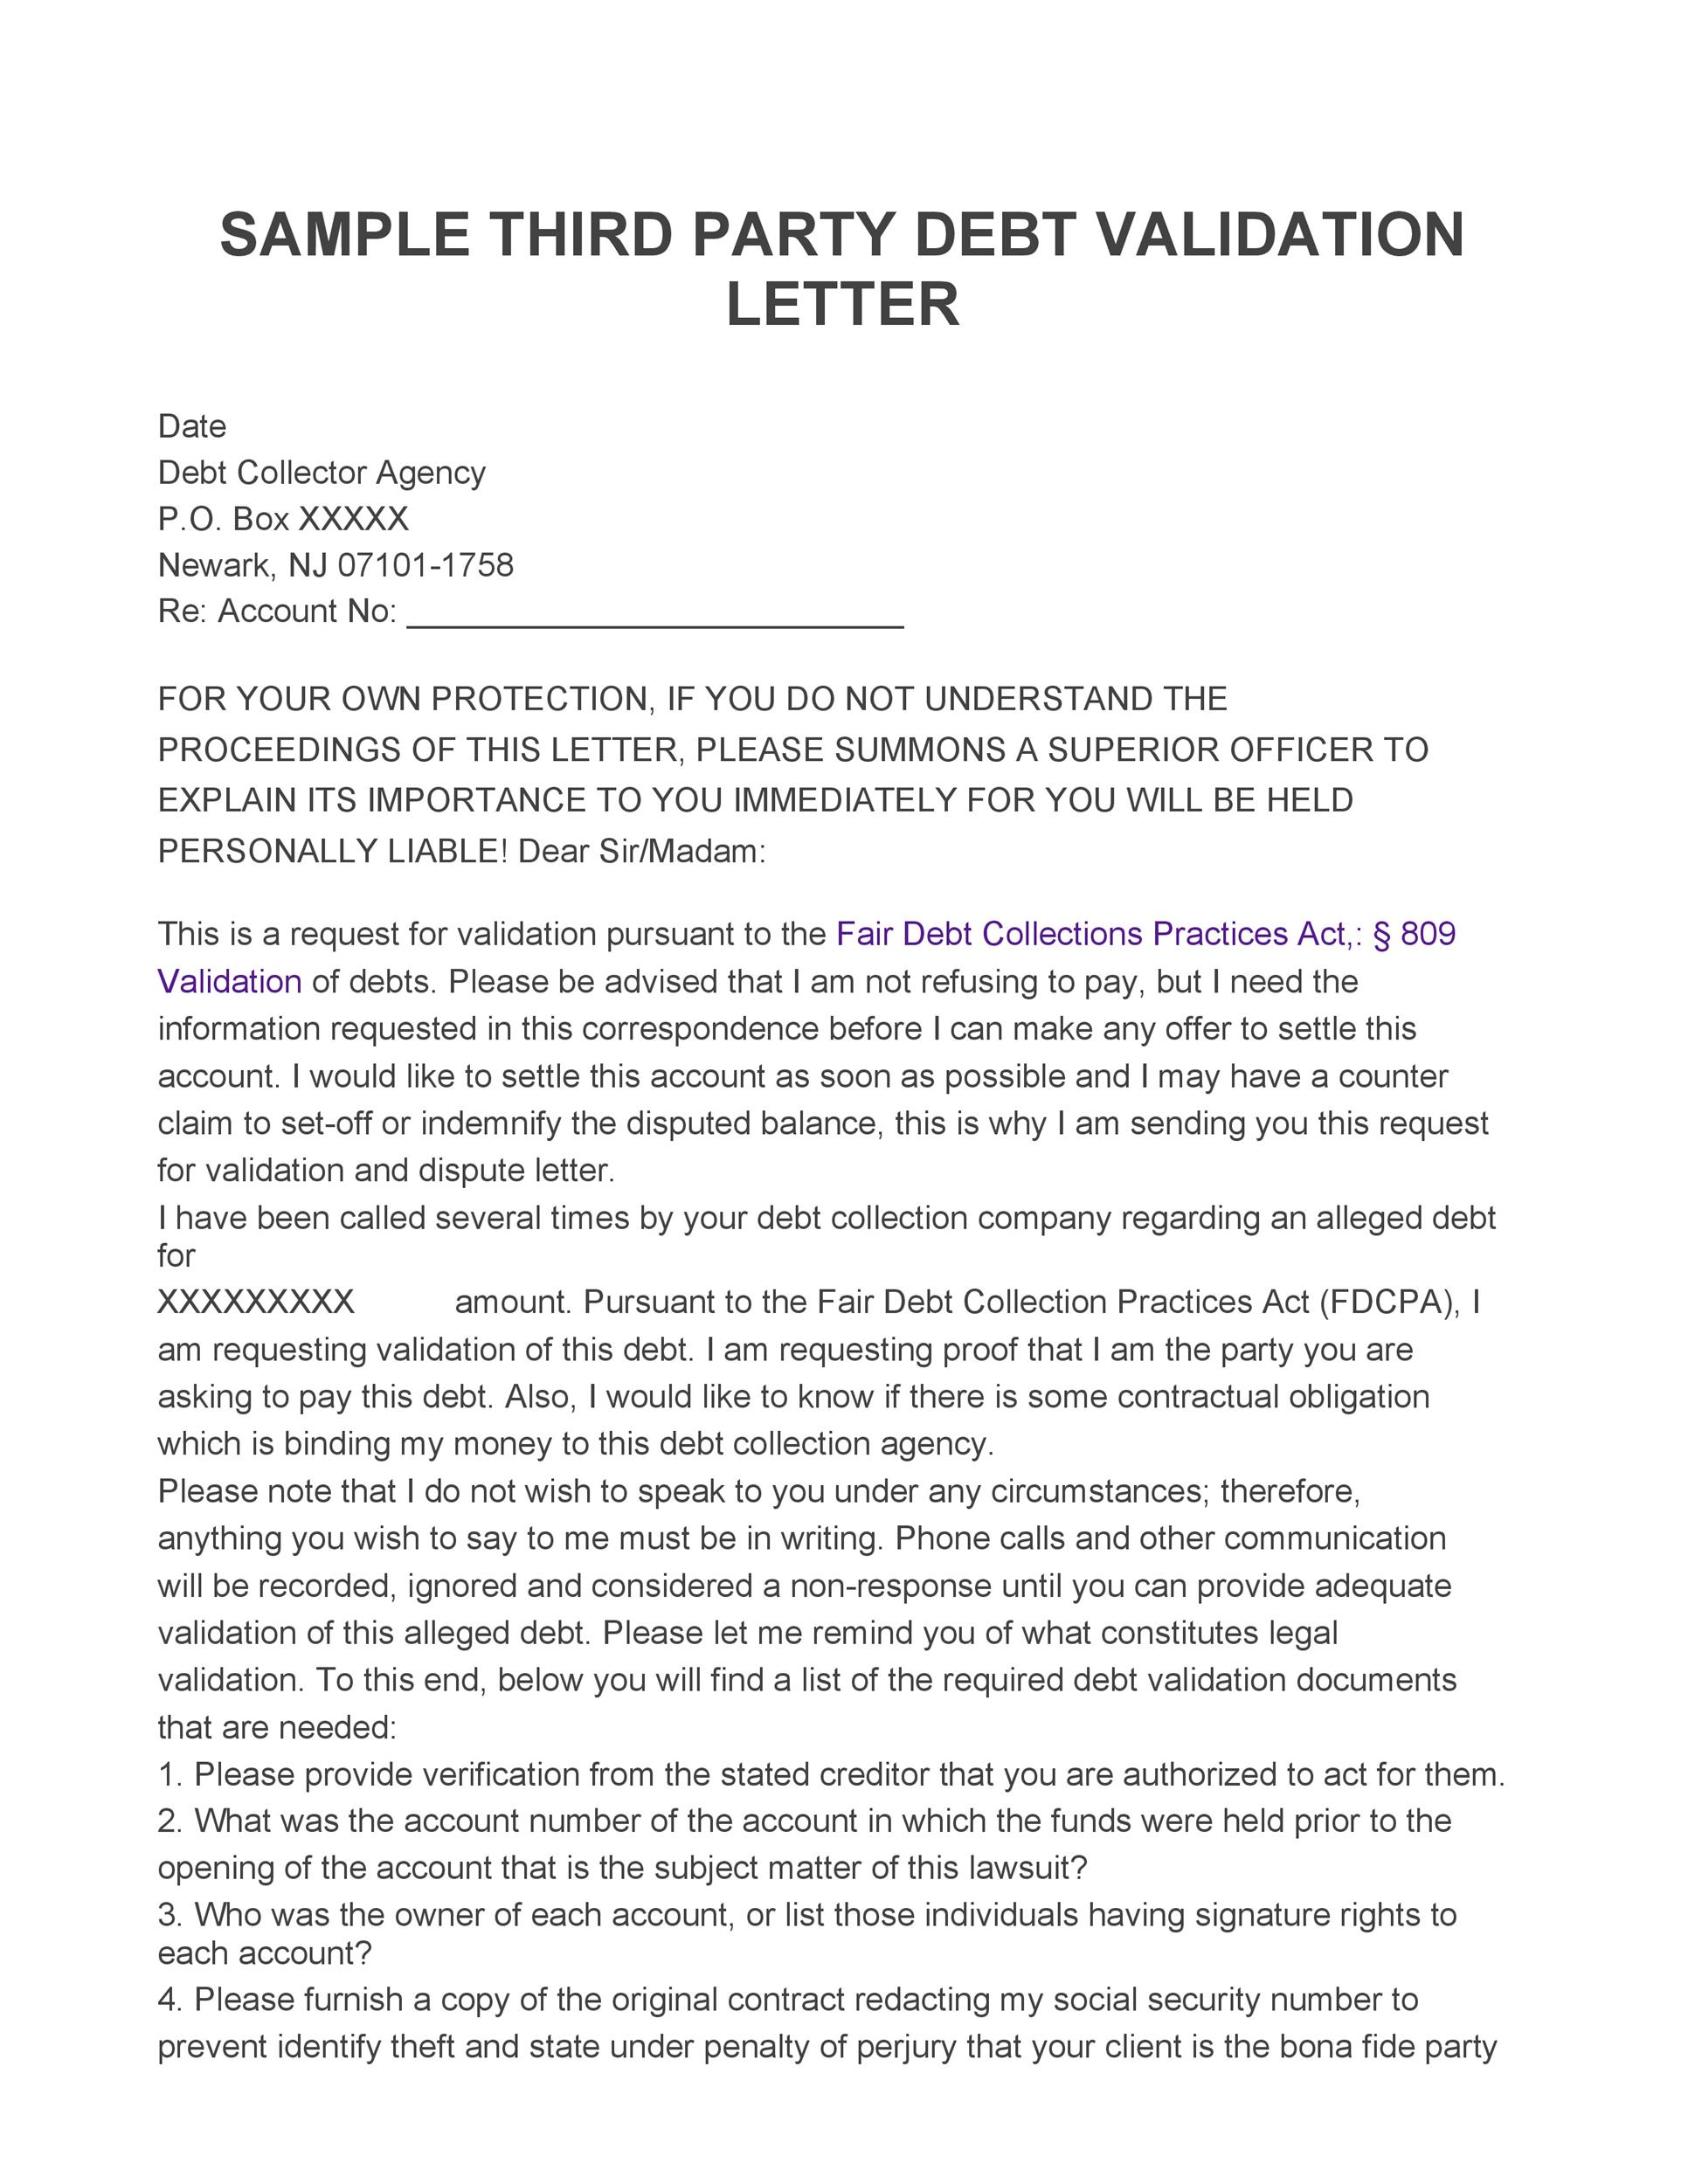 Free debt validation letter 43